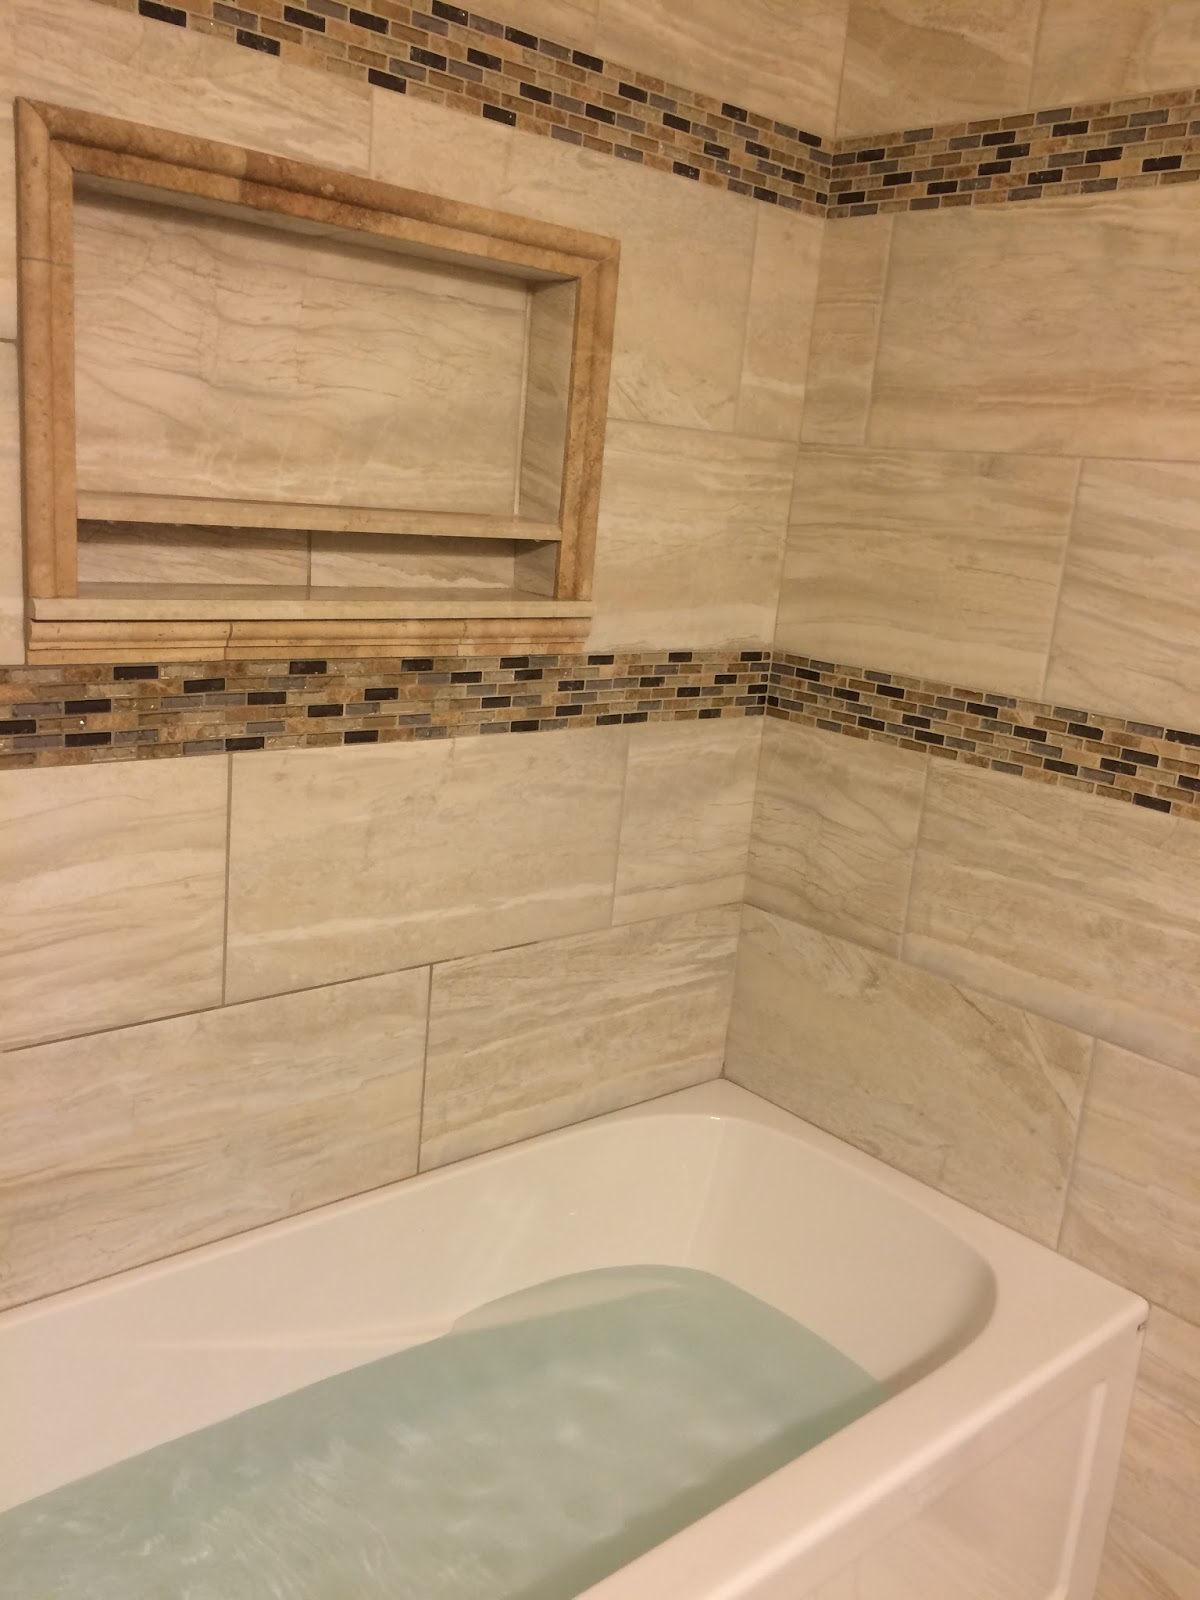 Preferred Custom Bathroom Remodeling: Large Format Tile Install w/ Soaker  SP03